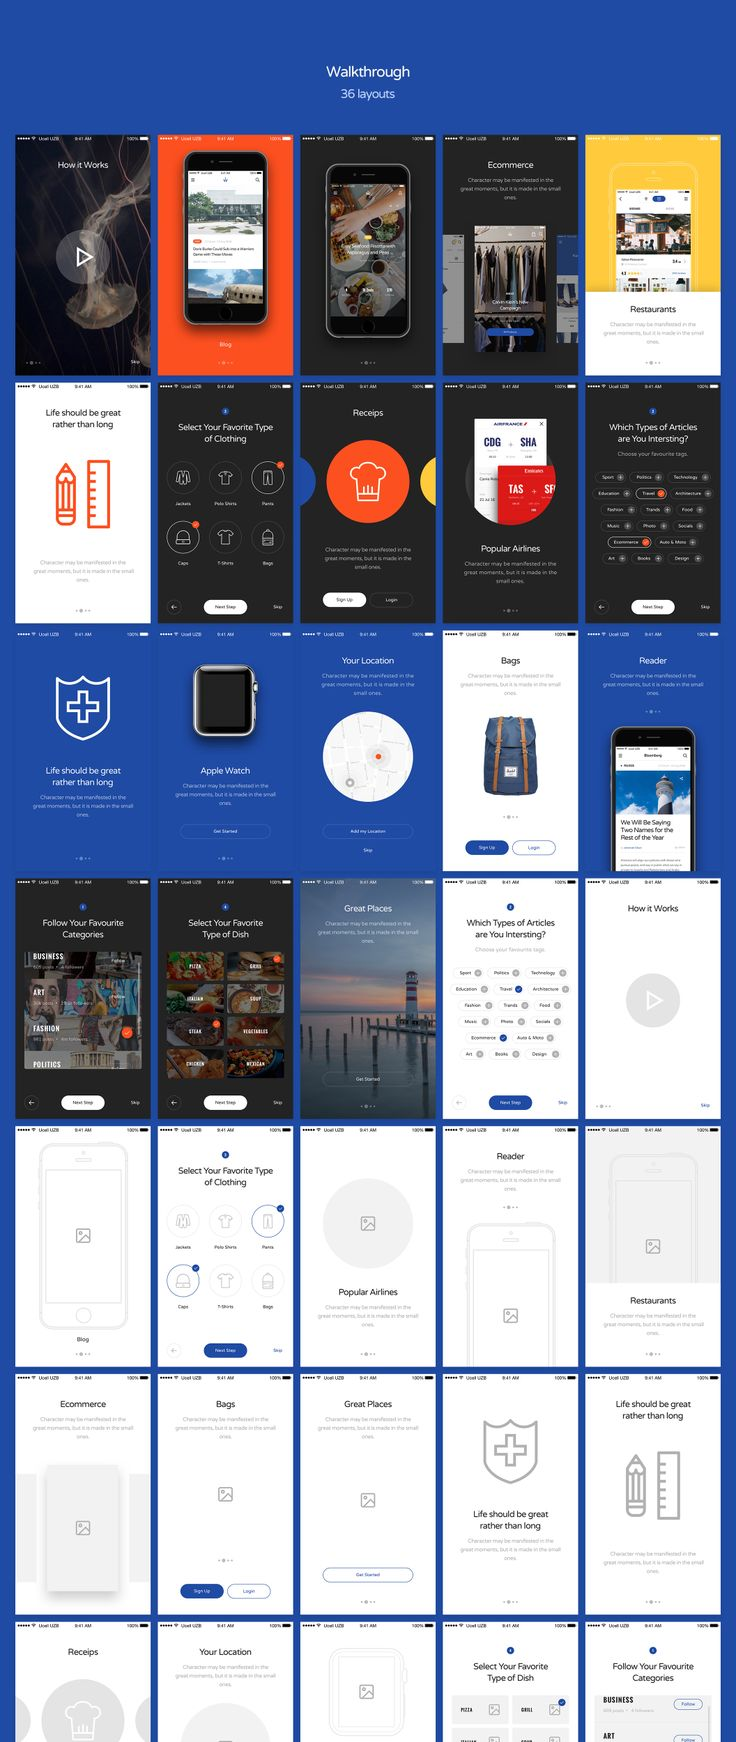 This awesome UI/UX Kit features a huge mobile UI Kit in both light & dark variants, as well as a Wireframe Kit for mobile projects. 290+ layouts in 8 categories helps to speed up your UI/UX workflow. Each layout was carefully crafted and based on modern design trends.